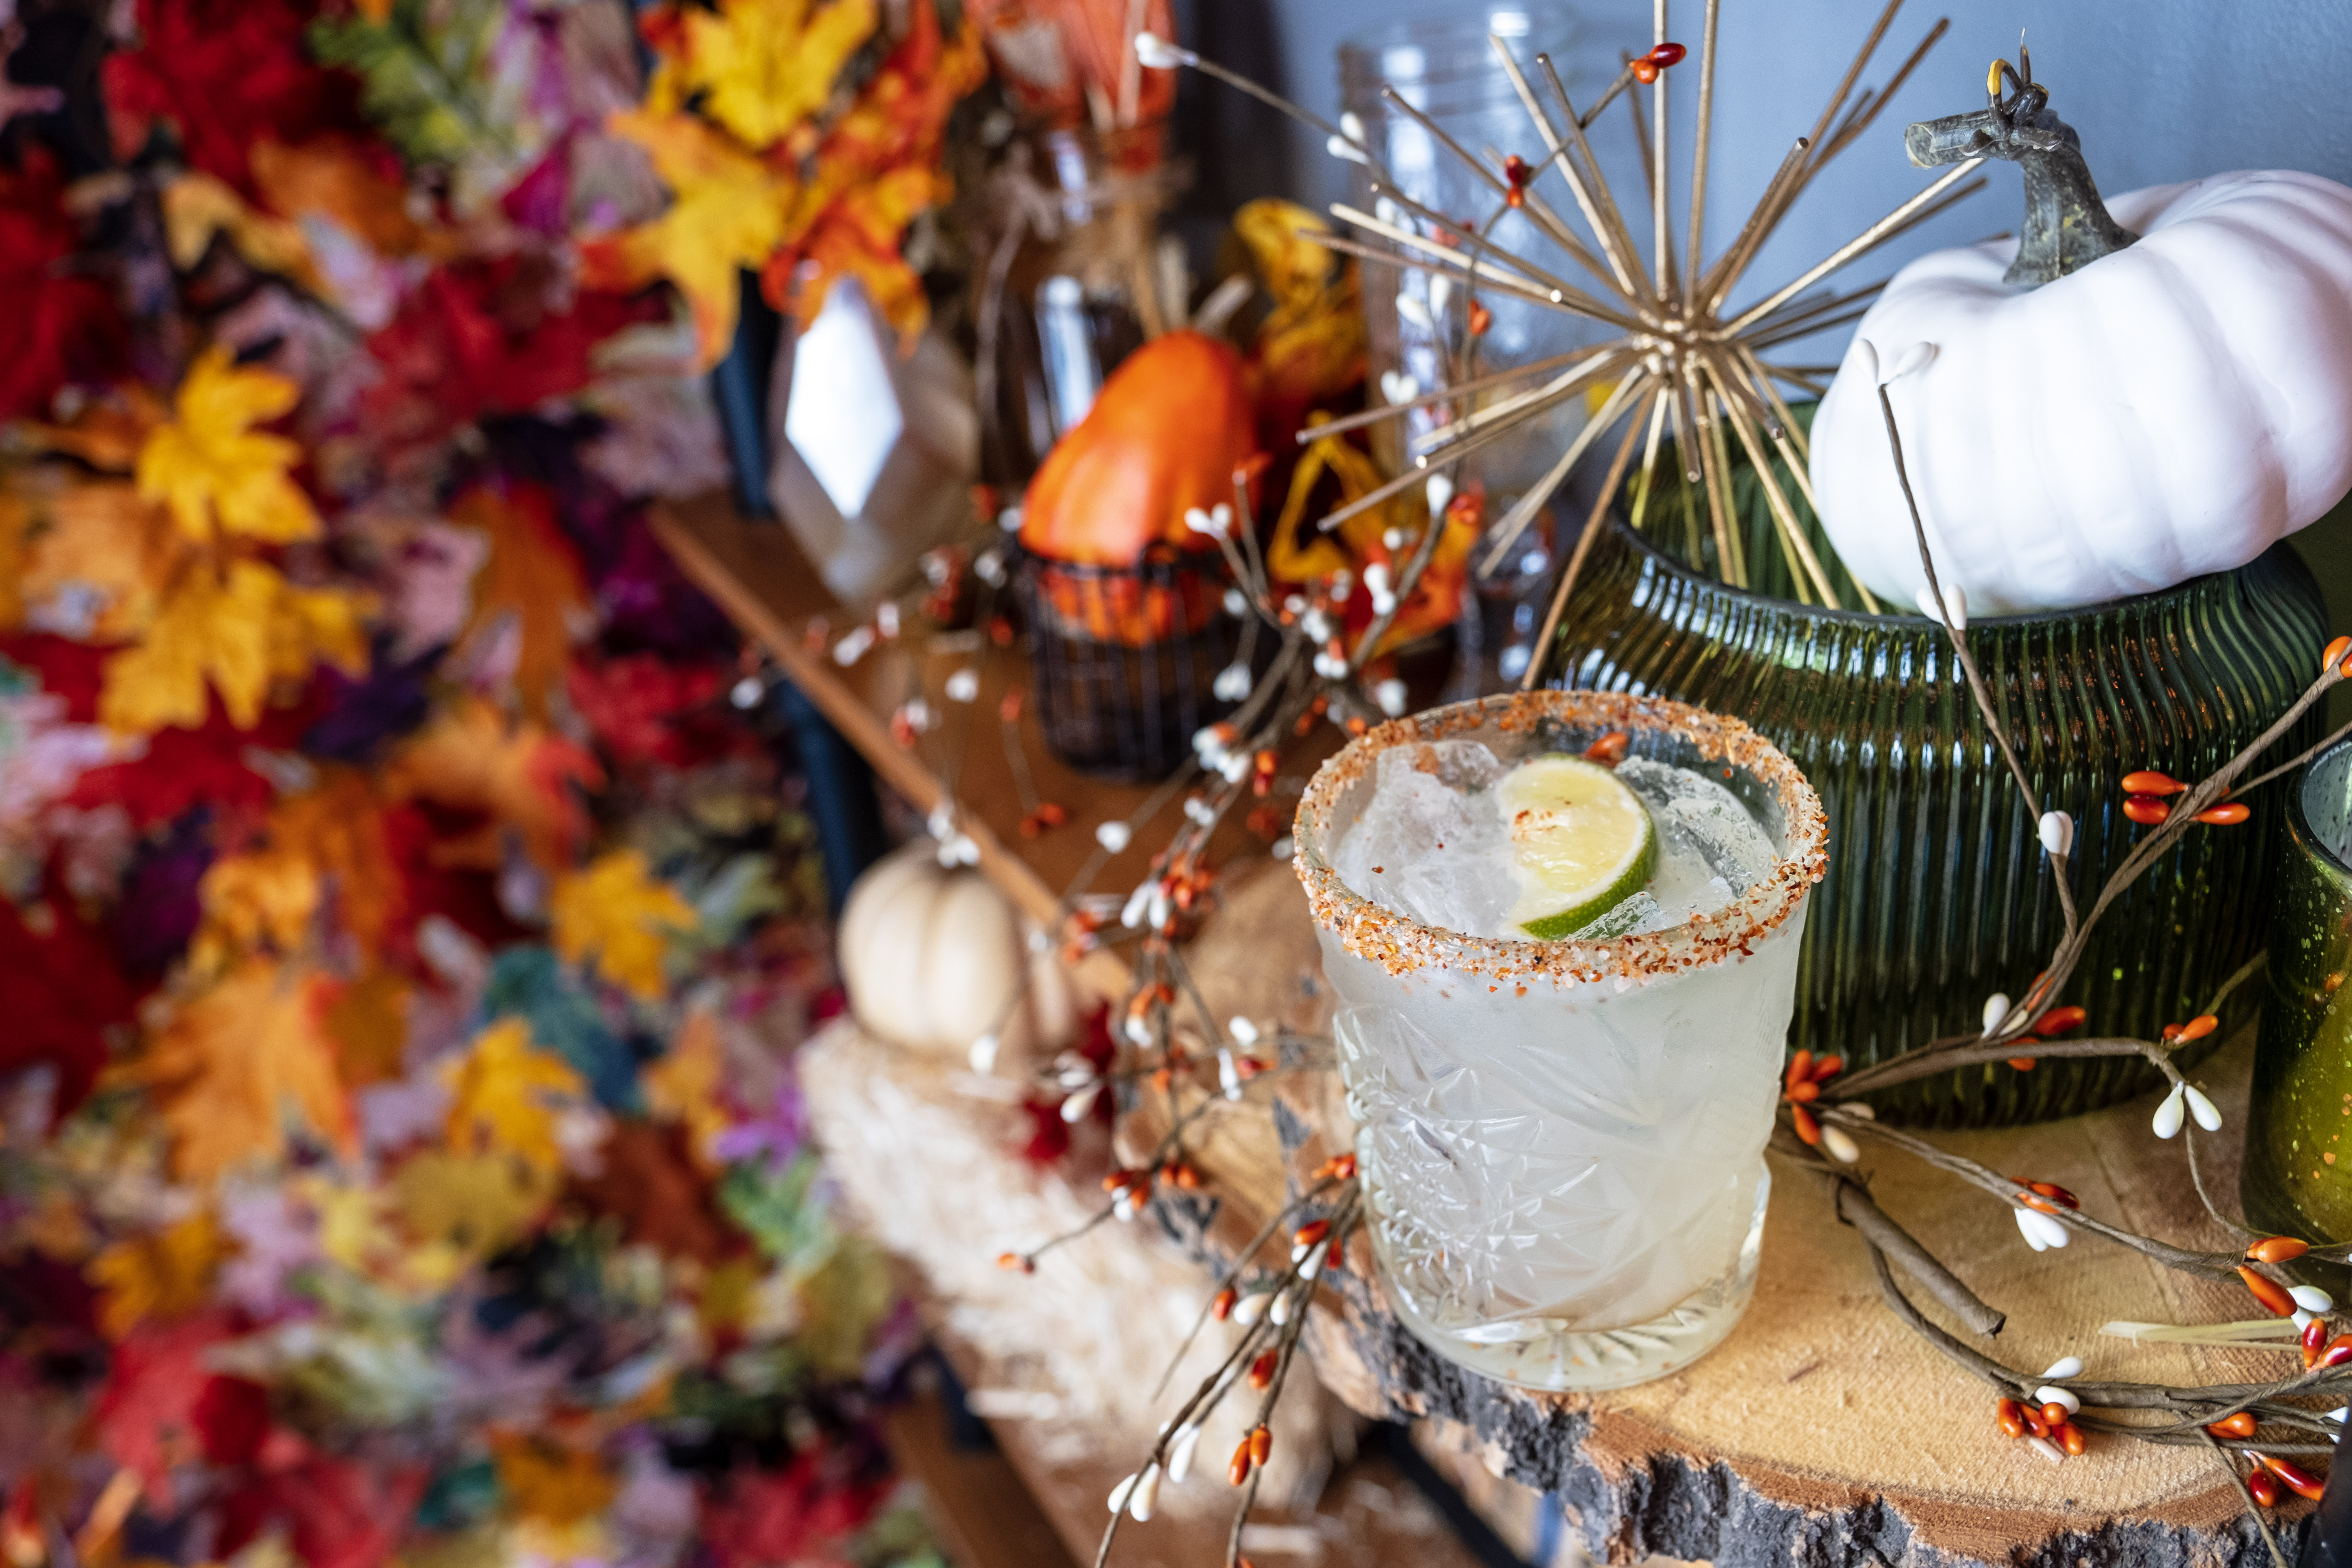 A cocktail in a short glass with a sugared rim and lime garnish on a table with a backdrop of colorful leaves and a round white gourd.